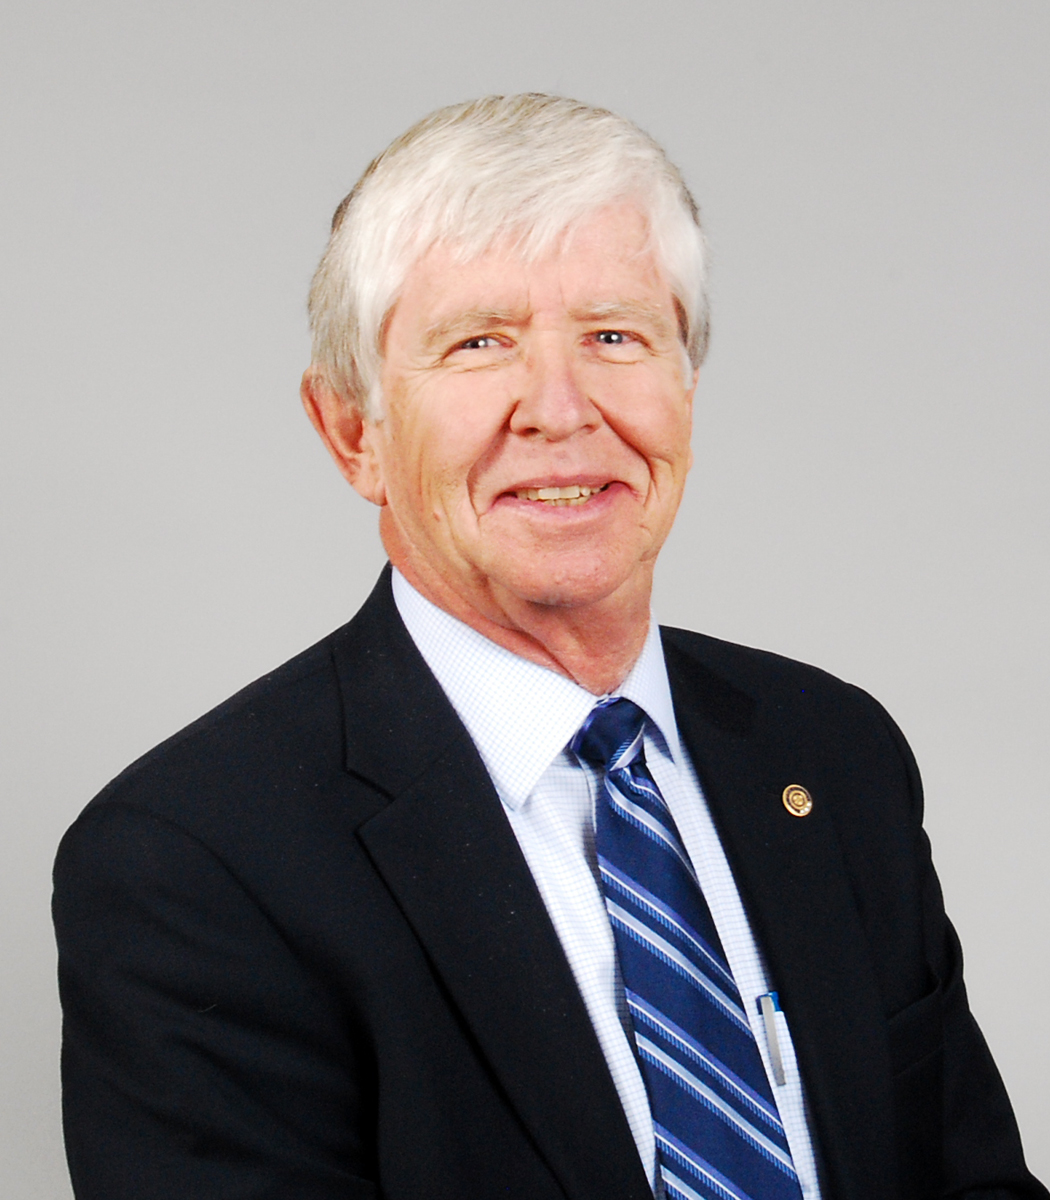 Marvin H. Dahlberg - Vice Chairman of the Board - NAEIR